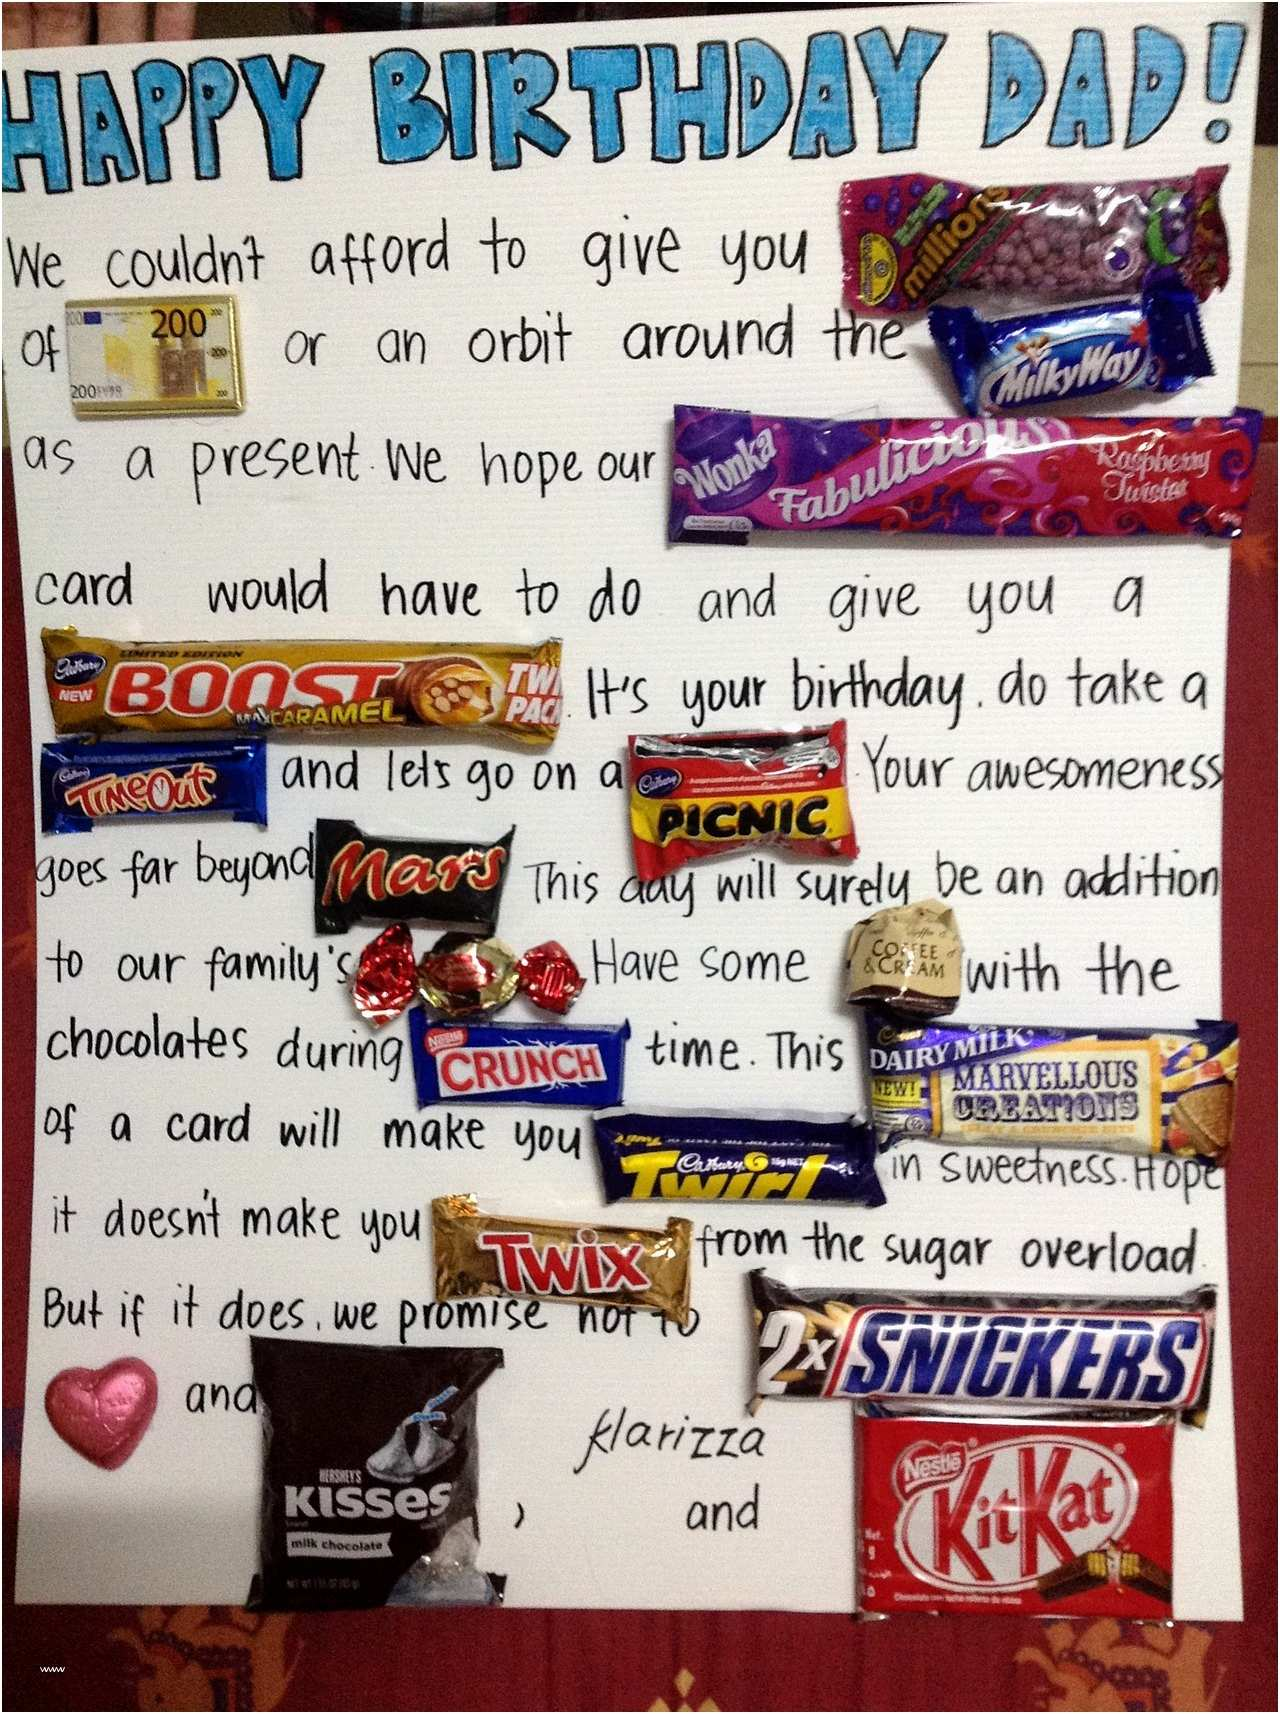 happy birthday card using candy bars ; altered-images-happy-birthday-download-best-of-candy-bar-birthday-card-throughout-ucwords-card-design-ideas-of-altered-images-happy-birthday-download